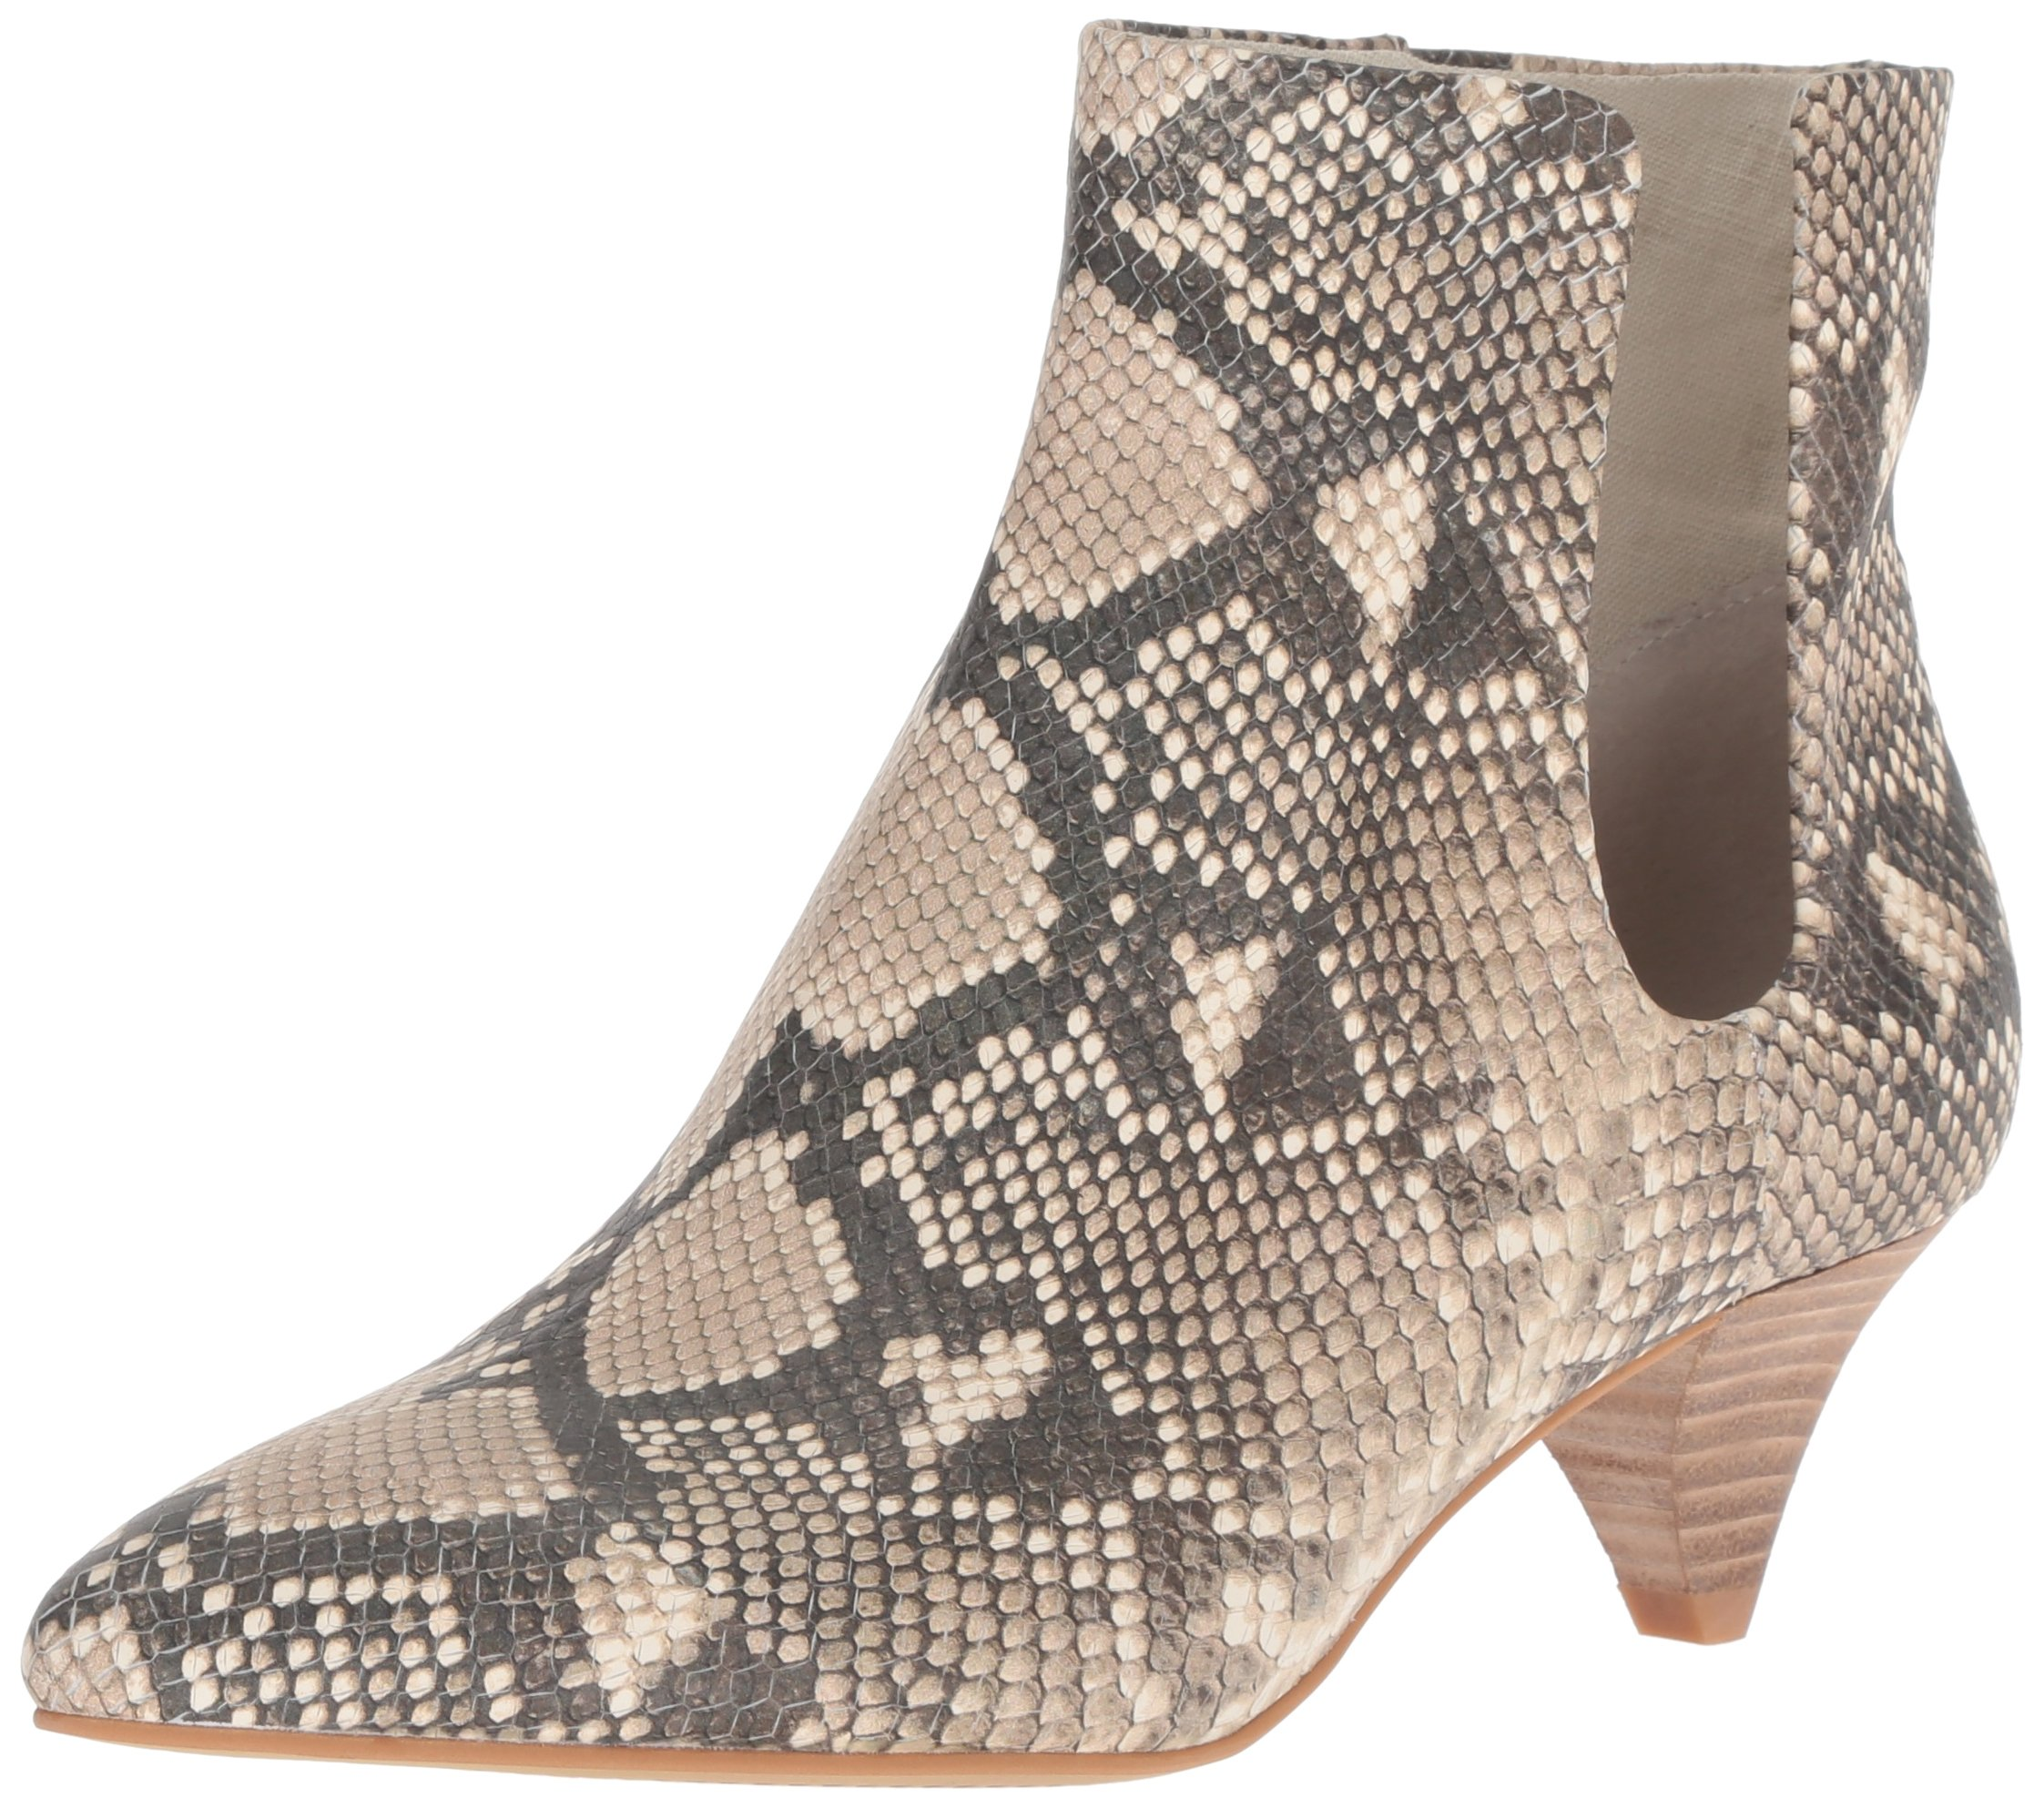 Dolce Vita Women's Yates Ankle Boot, Snake Print Embossed Leather, 6.5 M US by Dolce Vita